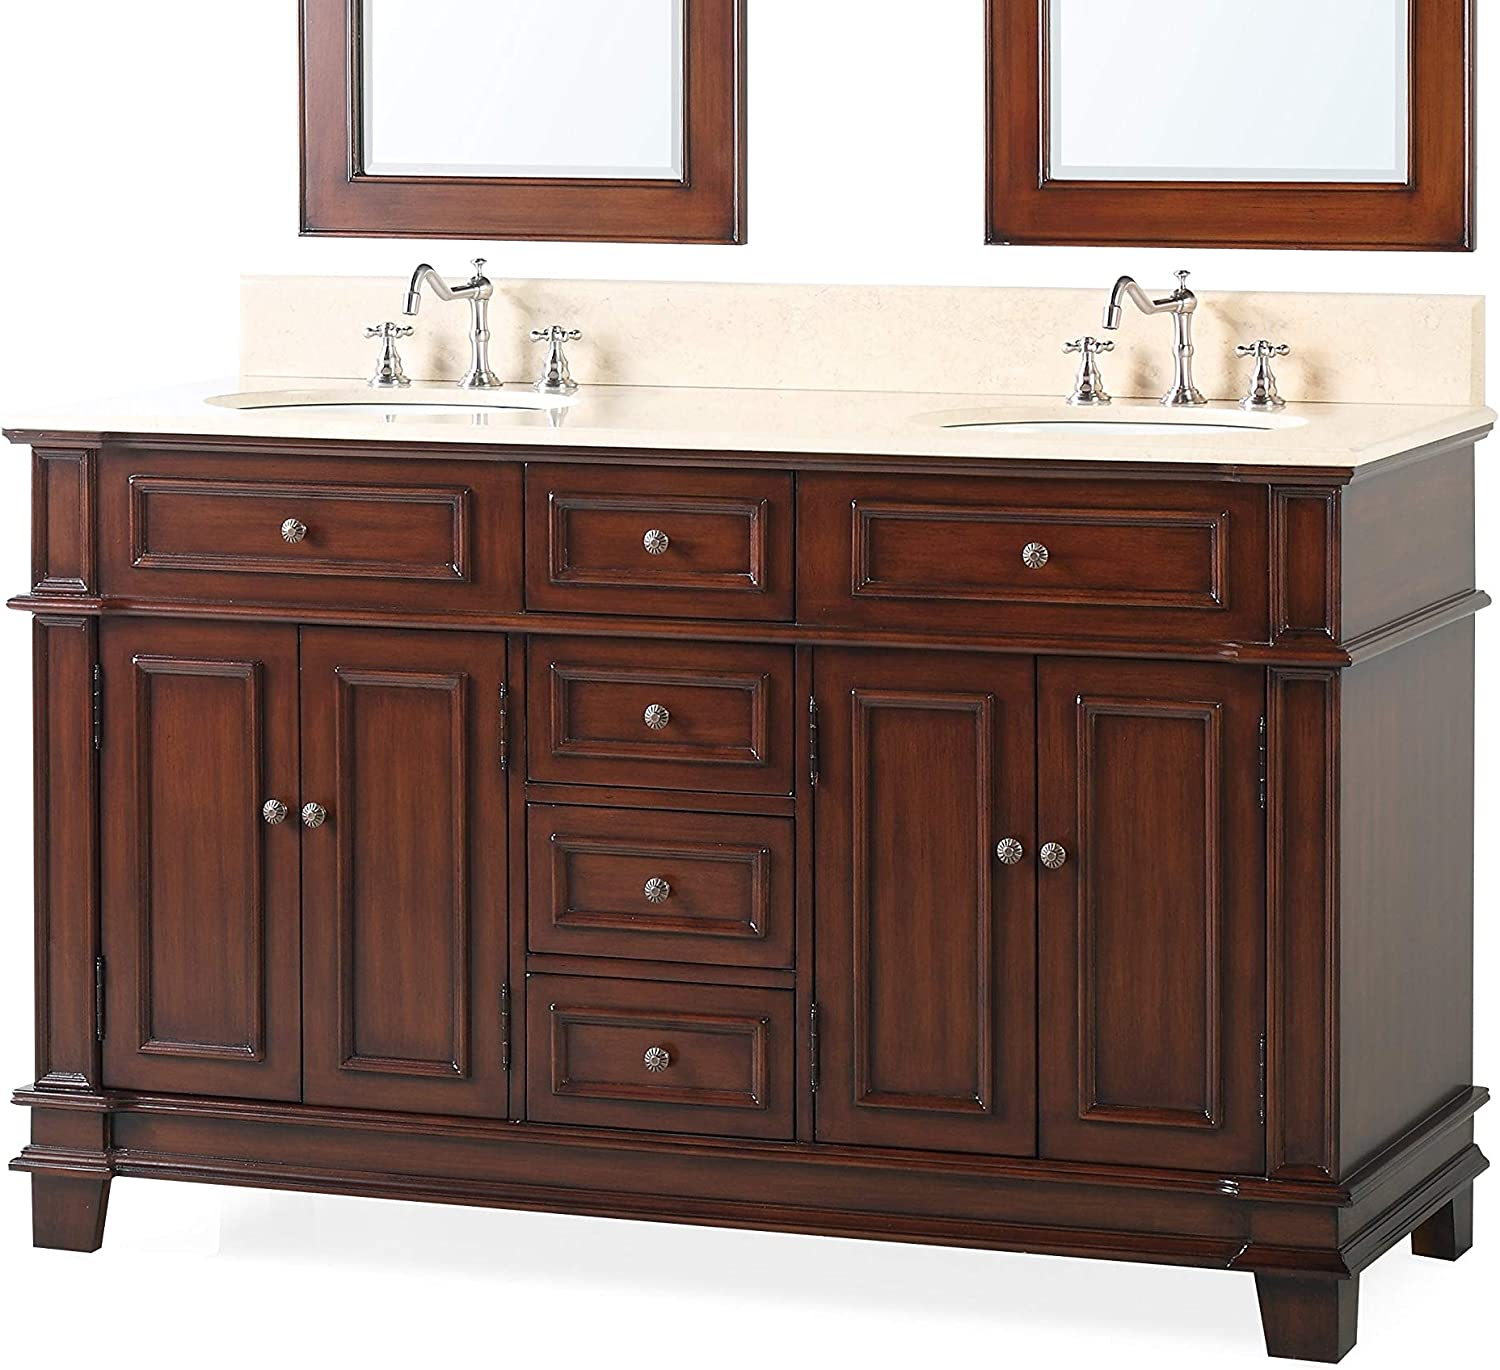 60 Benton Collection Double Sink Sanford Bathroom Sink Vanity Cabinet Model CF-3048M-60